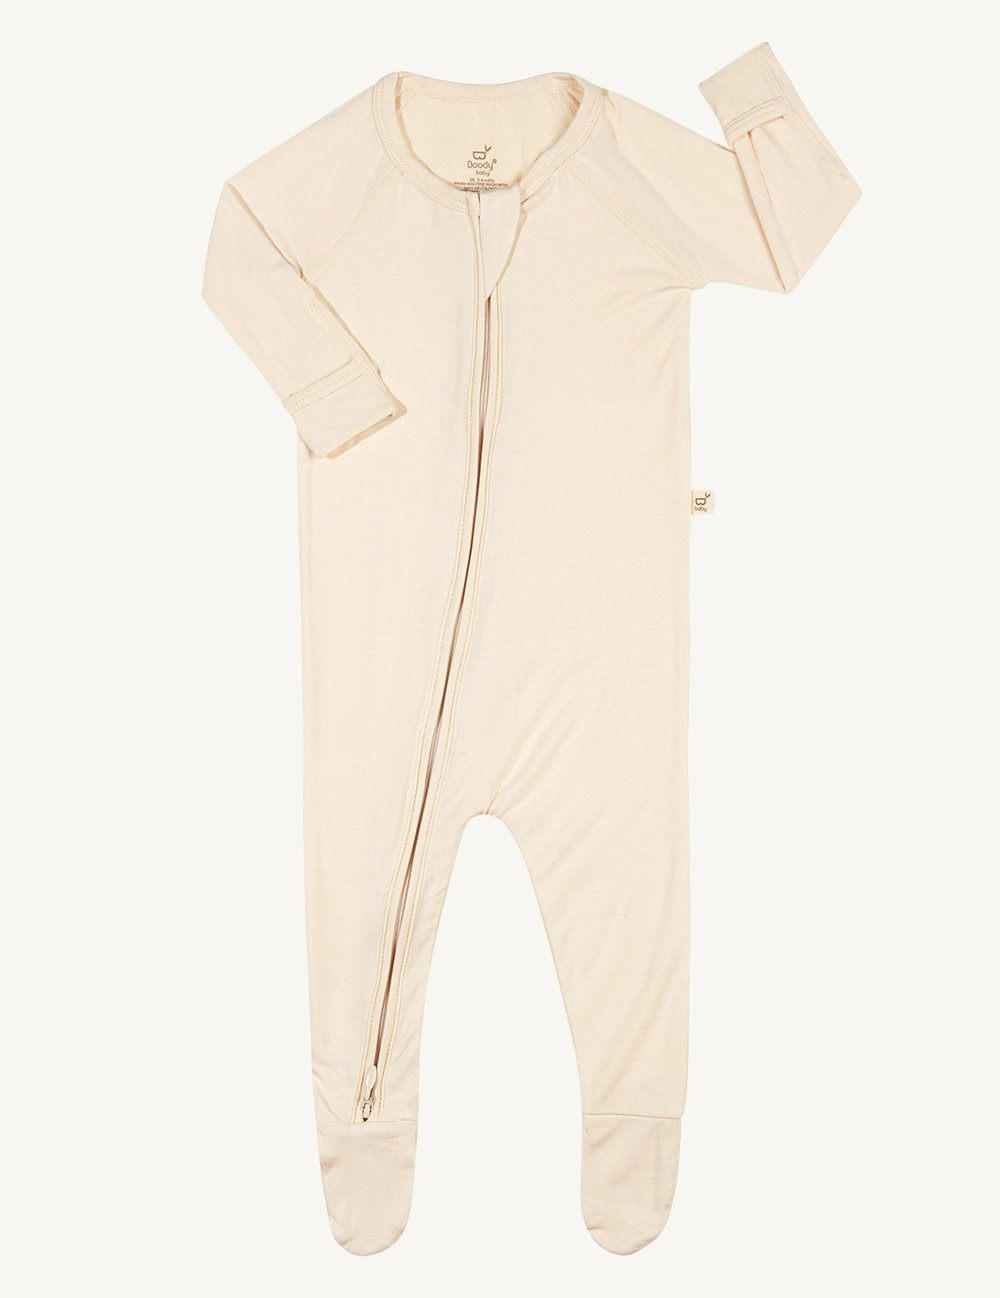 Boody baby - Onesie- Chalk https://babystuff.co.nz/products/boody-baby---onesie--chalk Boody baby is the perfect choice for you little one & our planet! With two way zipper & fold over mittens 95% viscose bamboo 5% elastane Superbly soft & stretchy Hypo-allergenic Comfortable & breathable Excellent moisture absorbency Anti-bacterial Sustainable & renewable Pesticide & chemical fre...